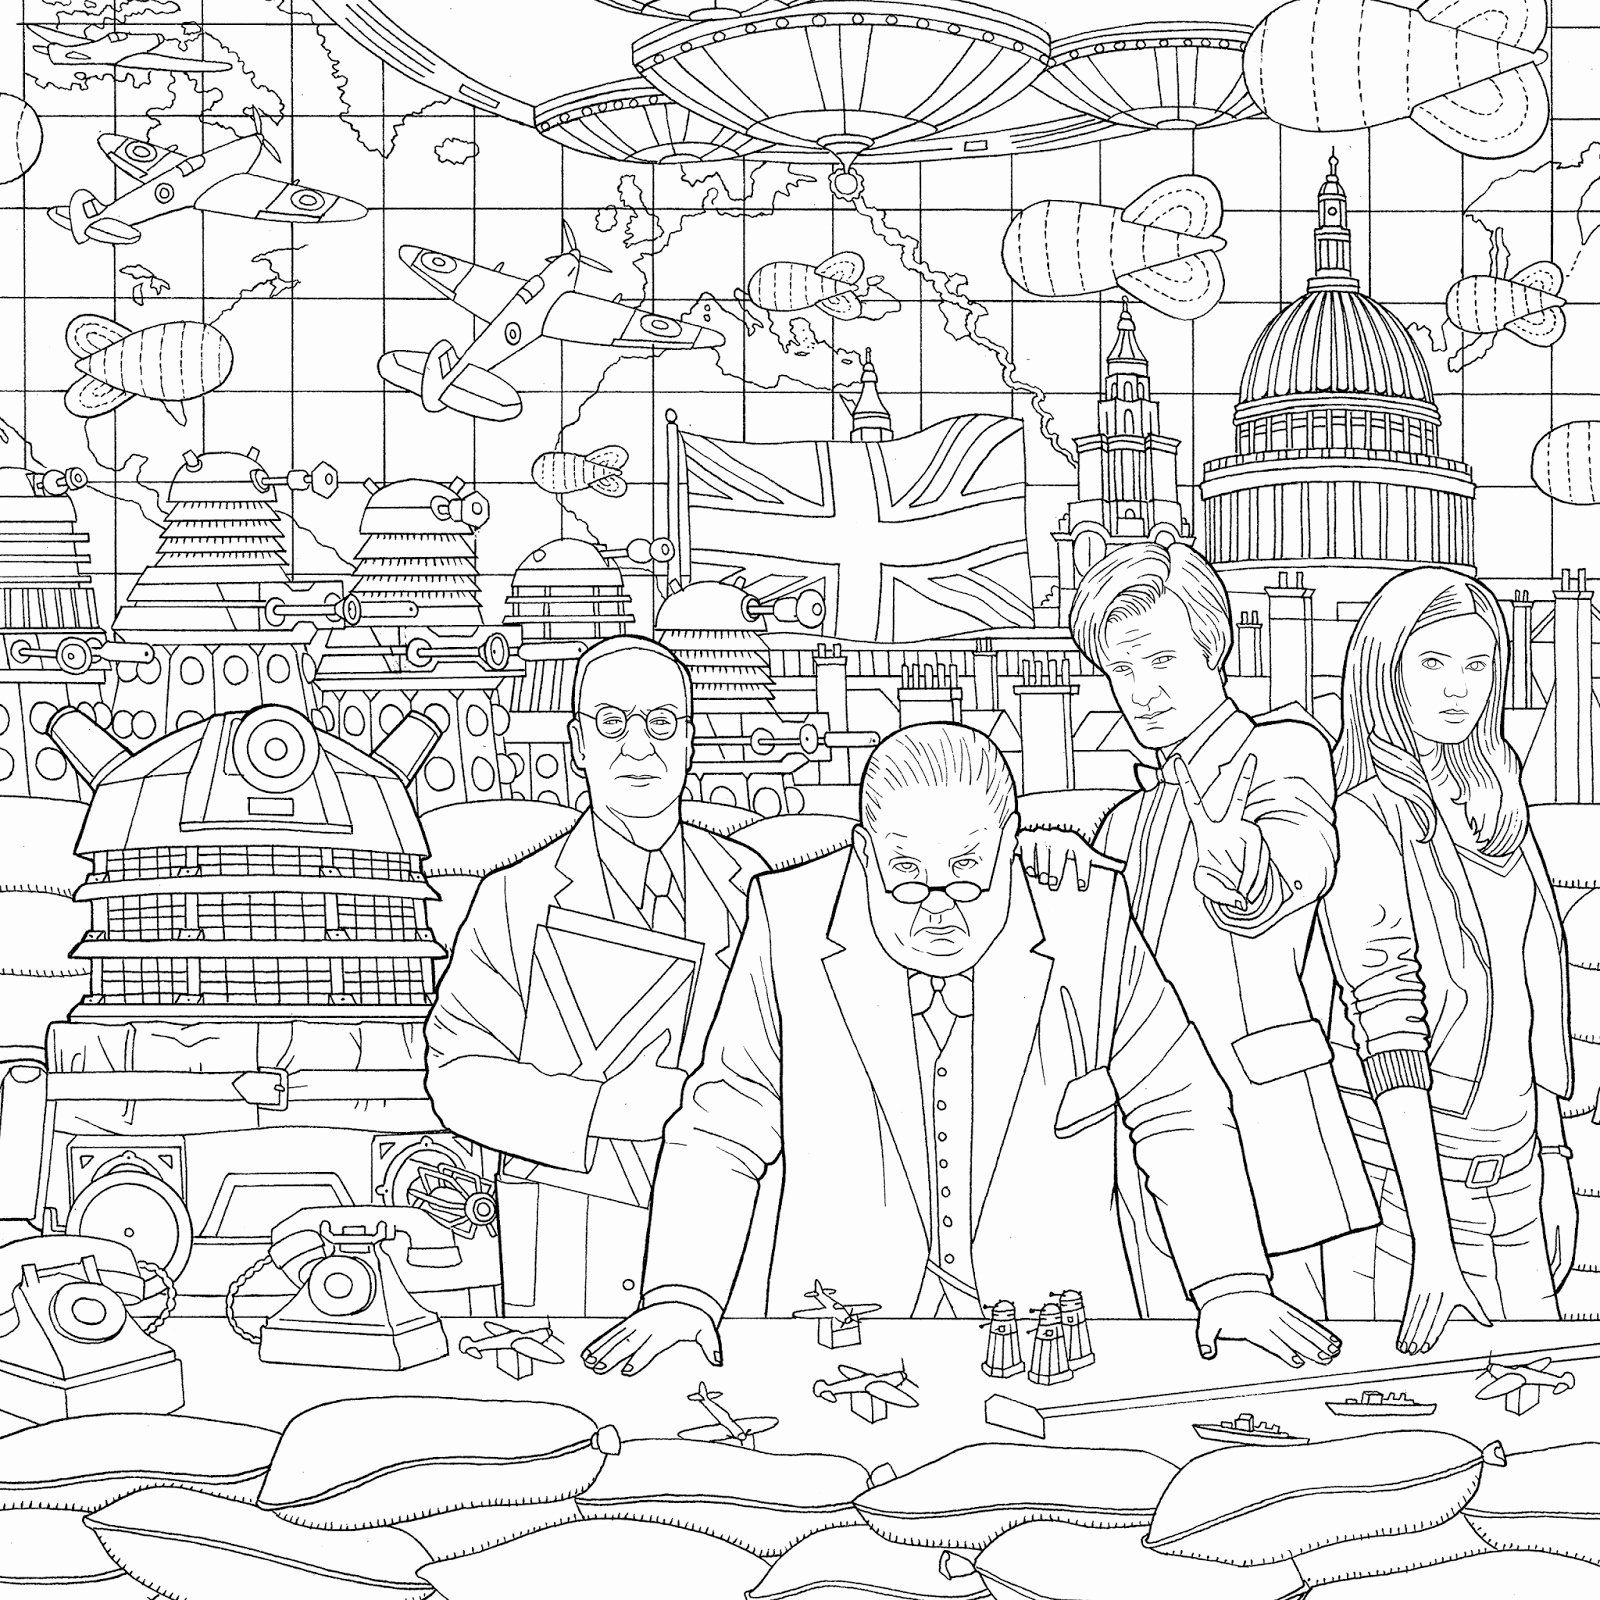 Dr Who Coloring Book Beautiful New Doctor Who Travels In Time Colouring Book Released In The Us Today Coloring Books Doctor Who Mermaid Coloring Book